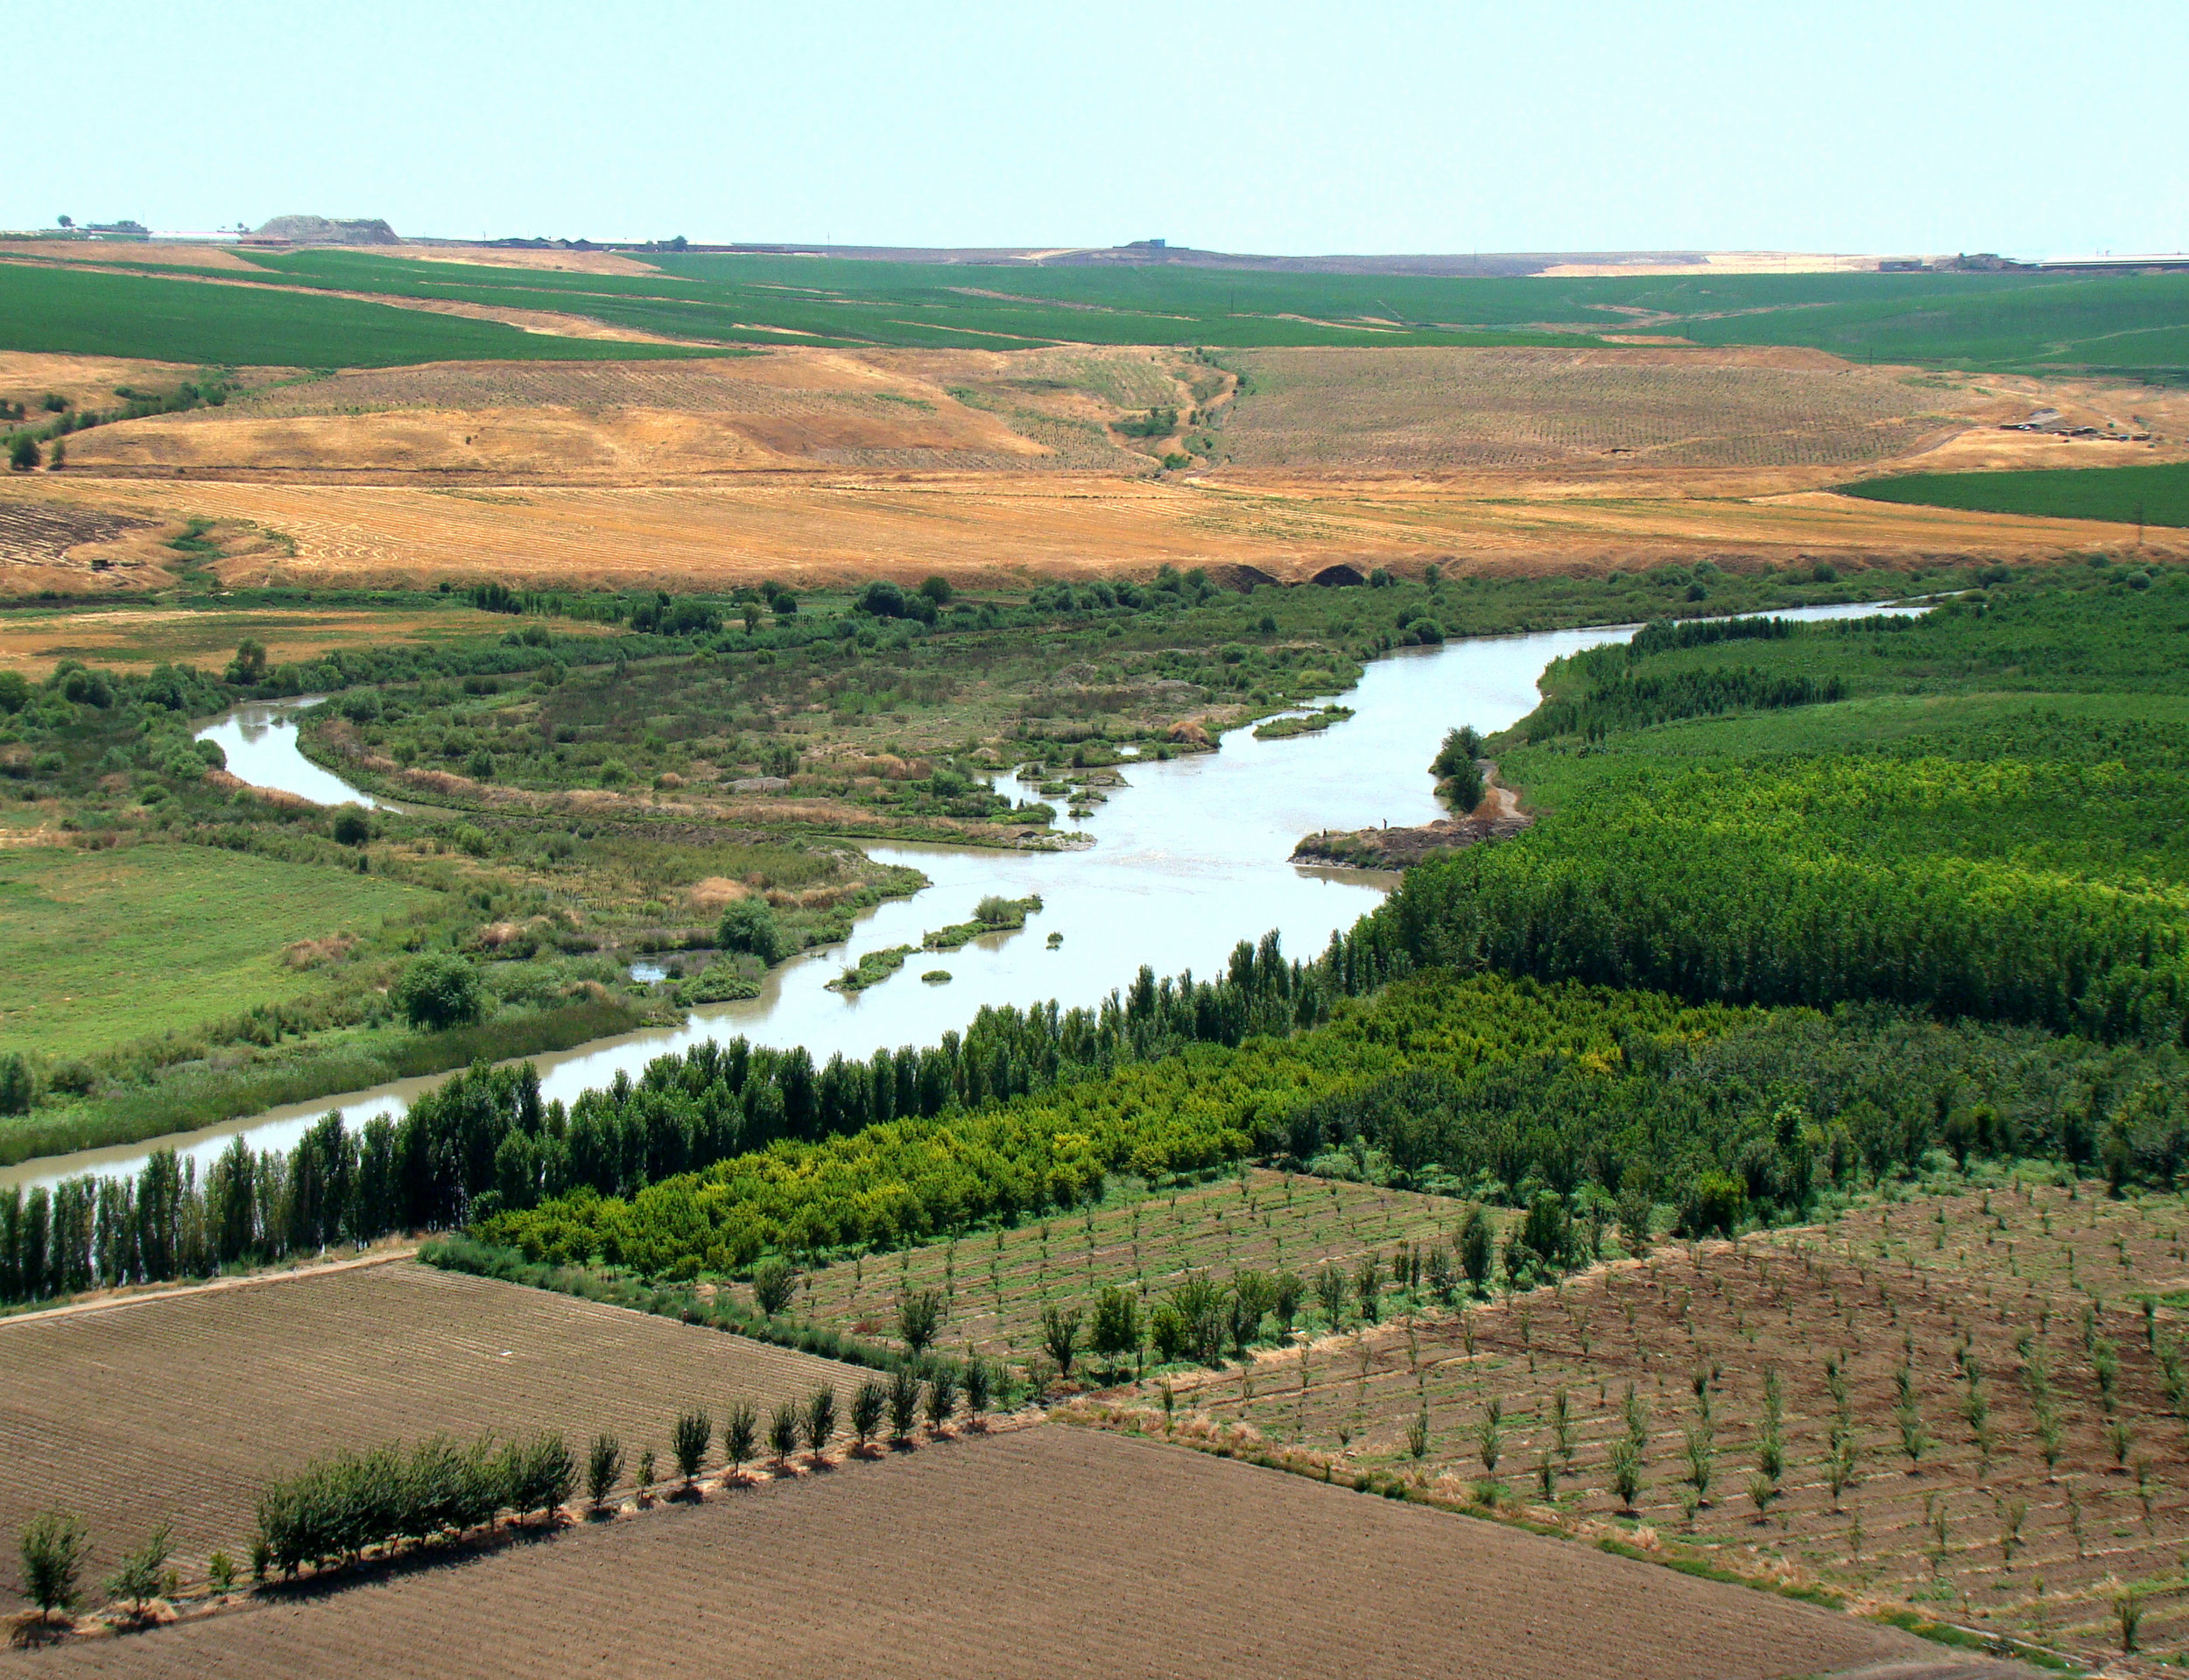 Tigris River at Diyarbakir Turkey (By Bjørn Christian Tørrissen - CC BY-SA 3.0)